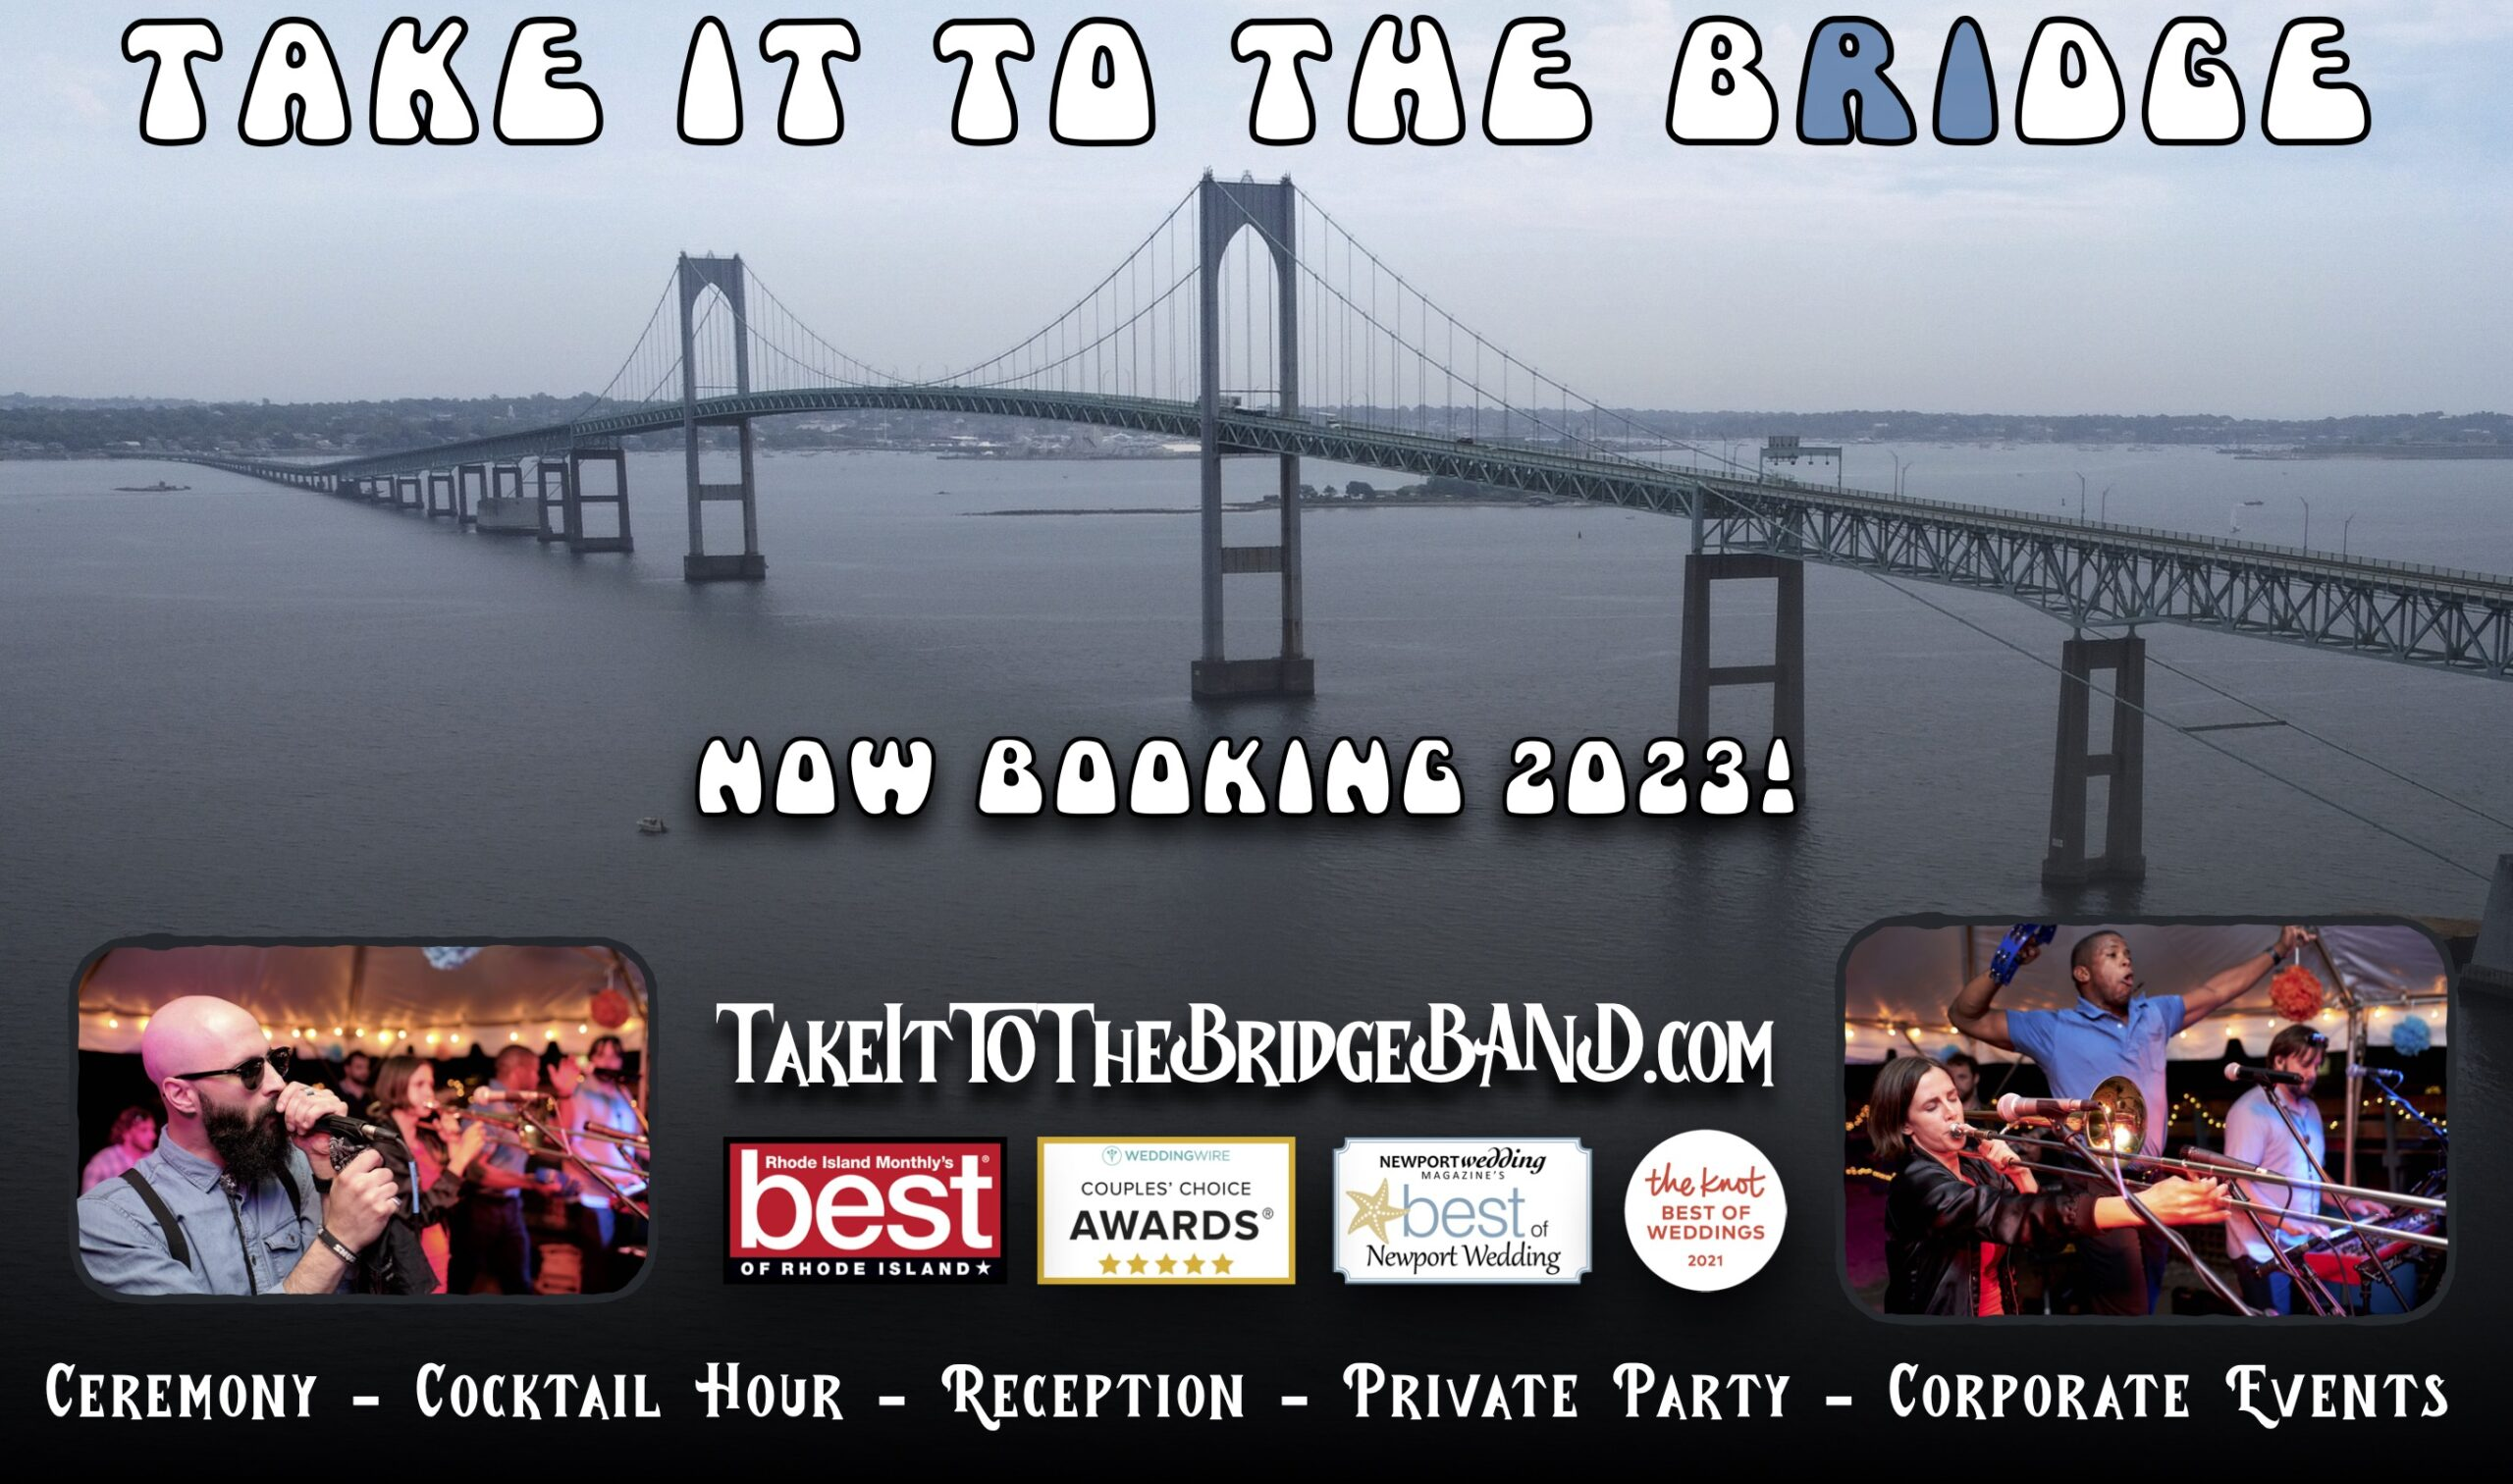 Now Booking 2023